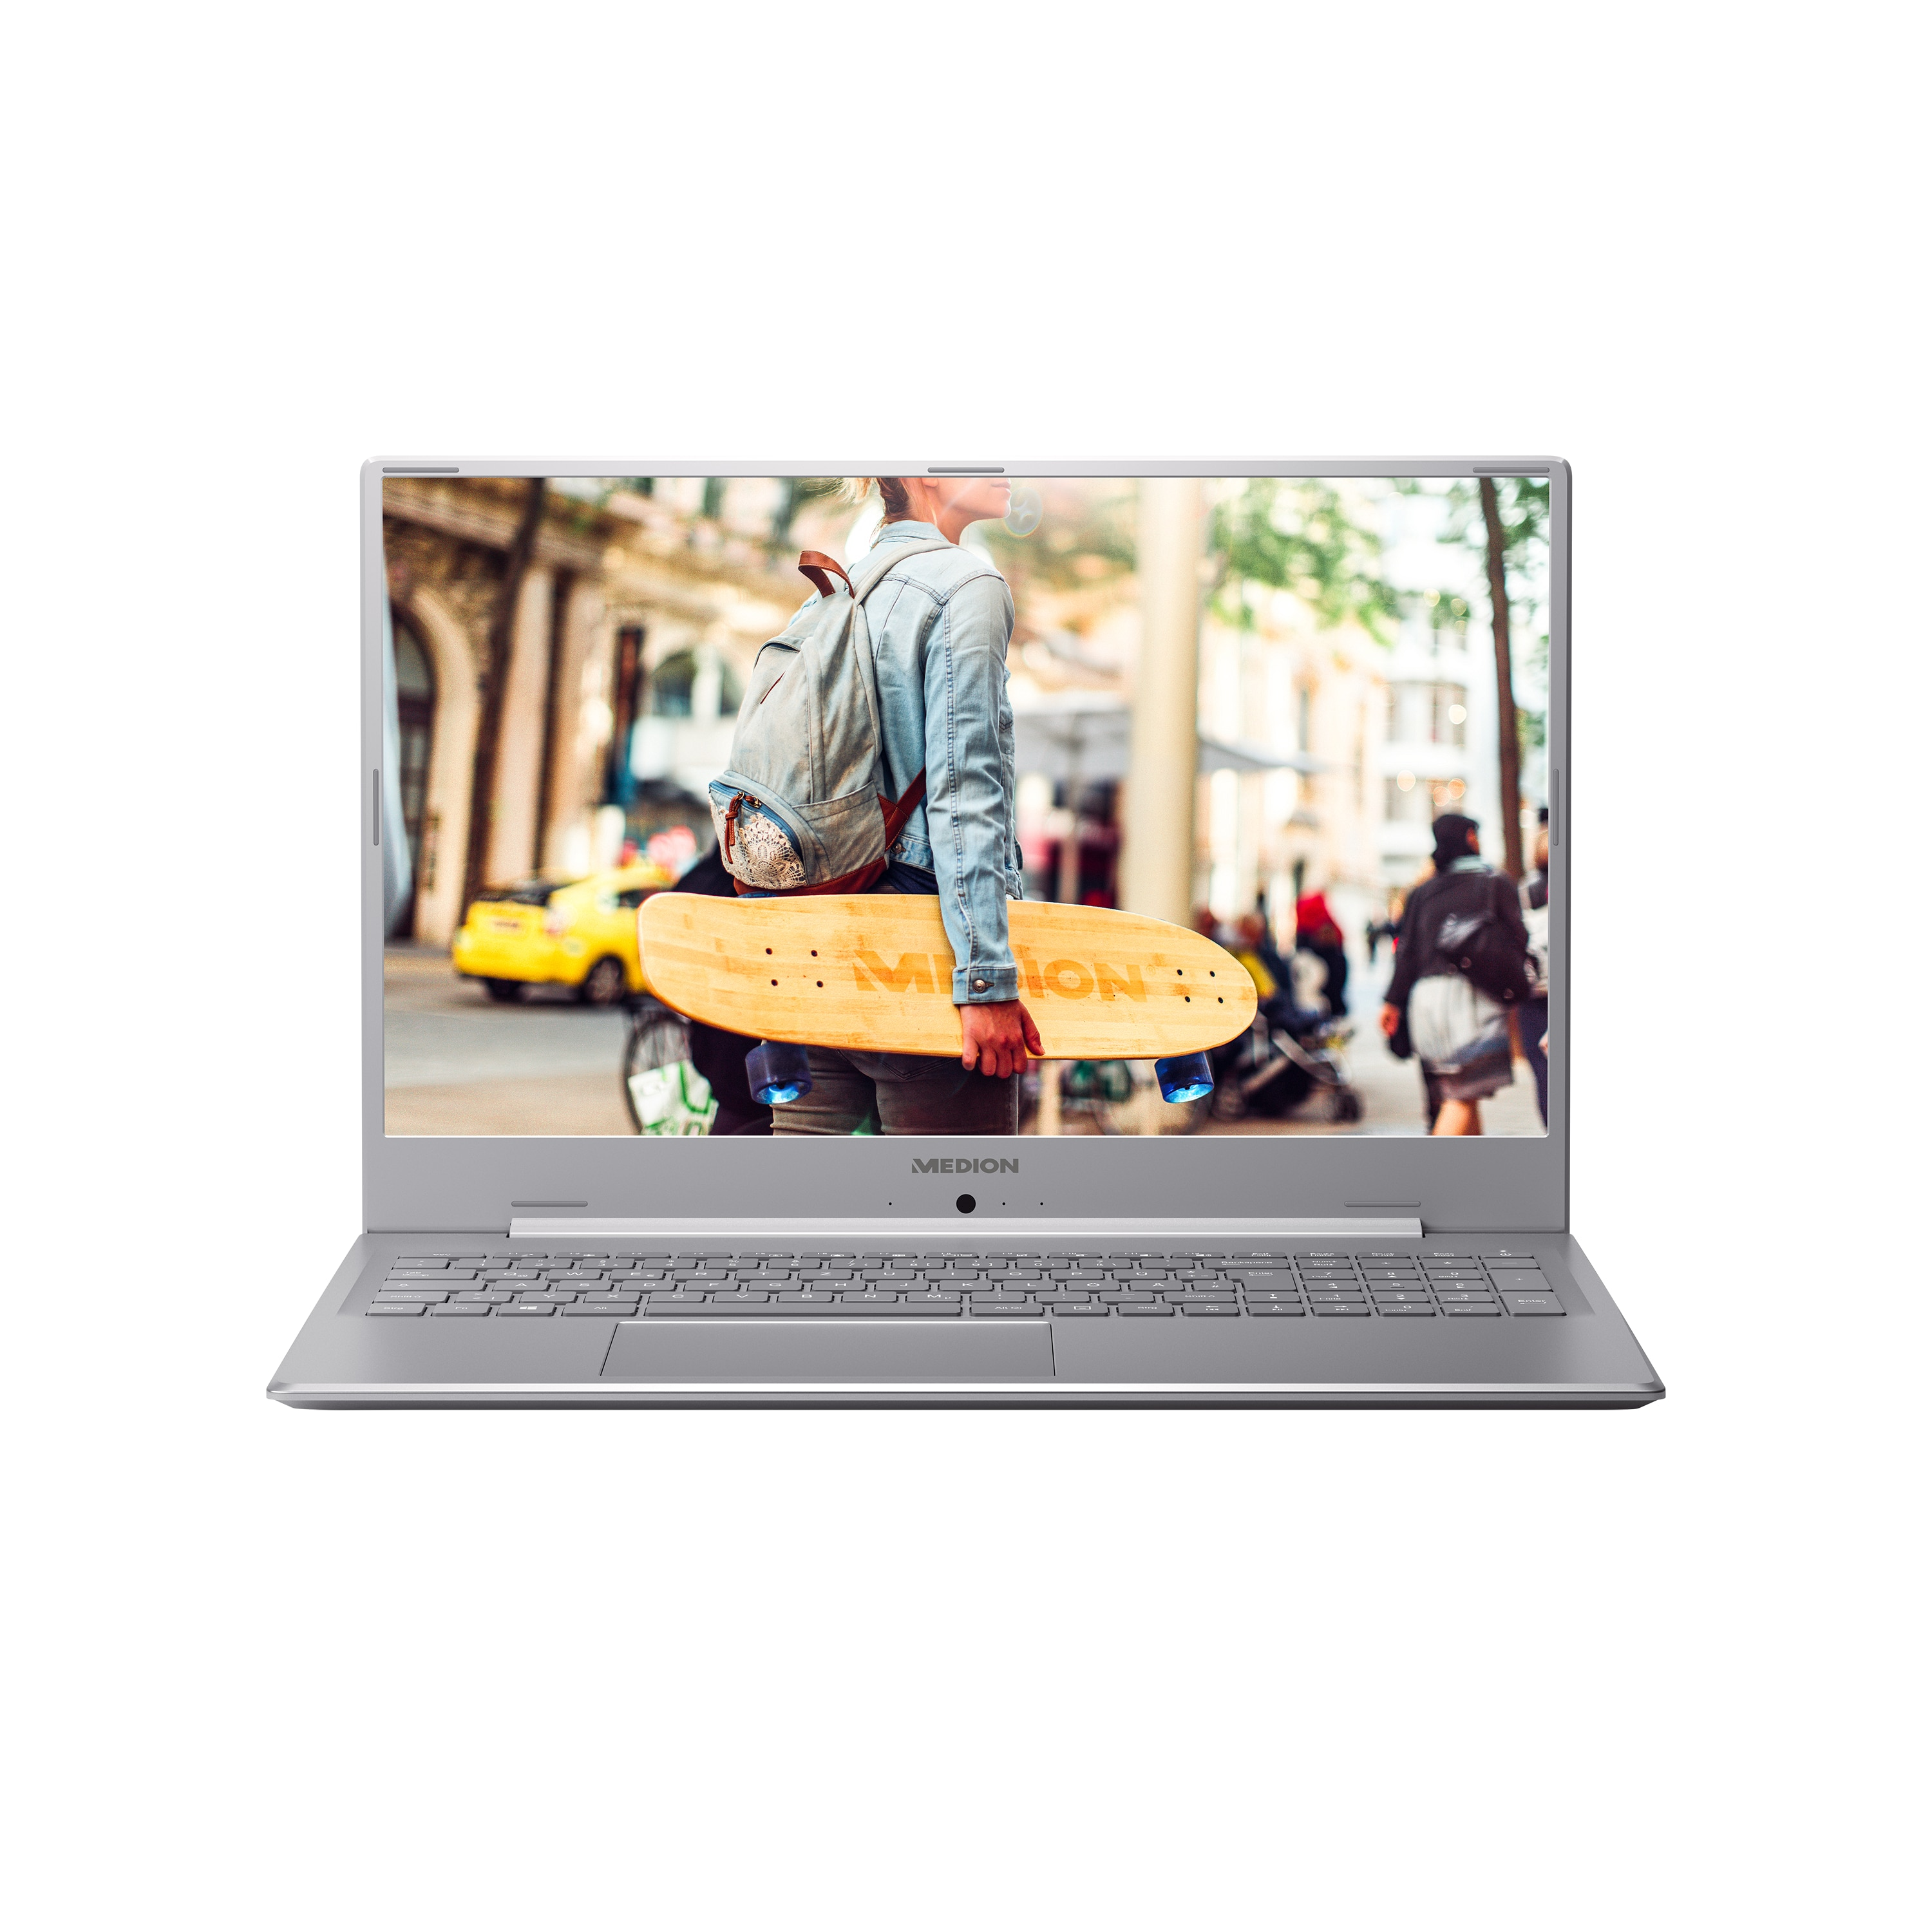 MEDION® AKOYA® E17201, Intel® Pentium® N5000, Windows 10 Home, 43,9 cm (17,3) FHD Display, 256 GB SSD, 8 GB RAM, Schlankes Design, Schnellladefunktion, Notebook